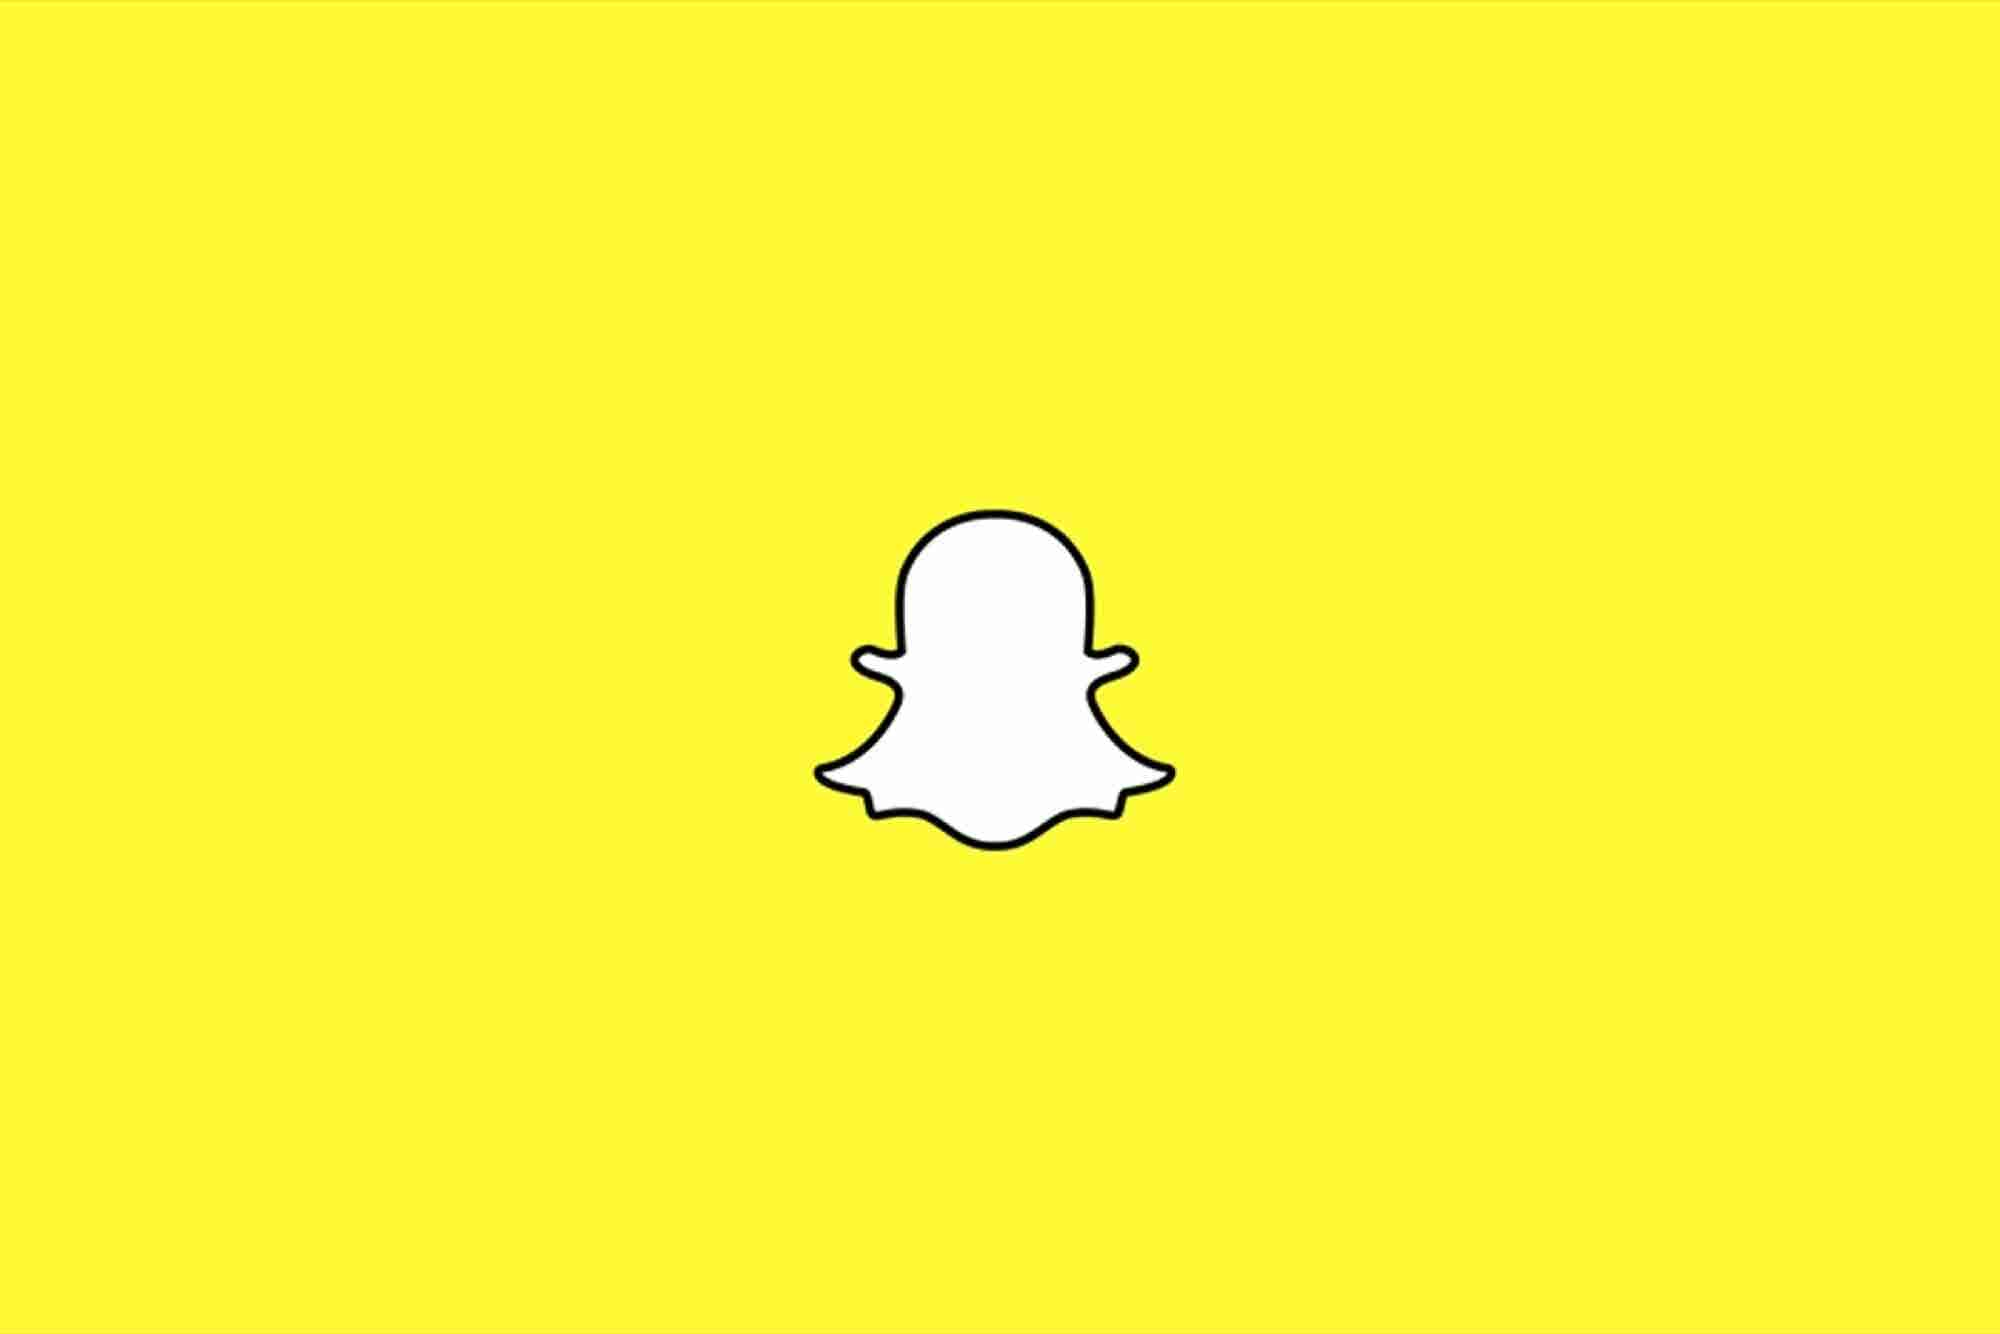 7 Ways Snap Could Break Open Social Media in 2017